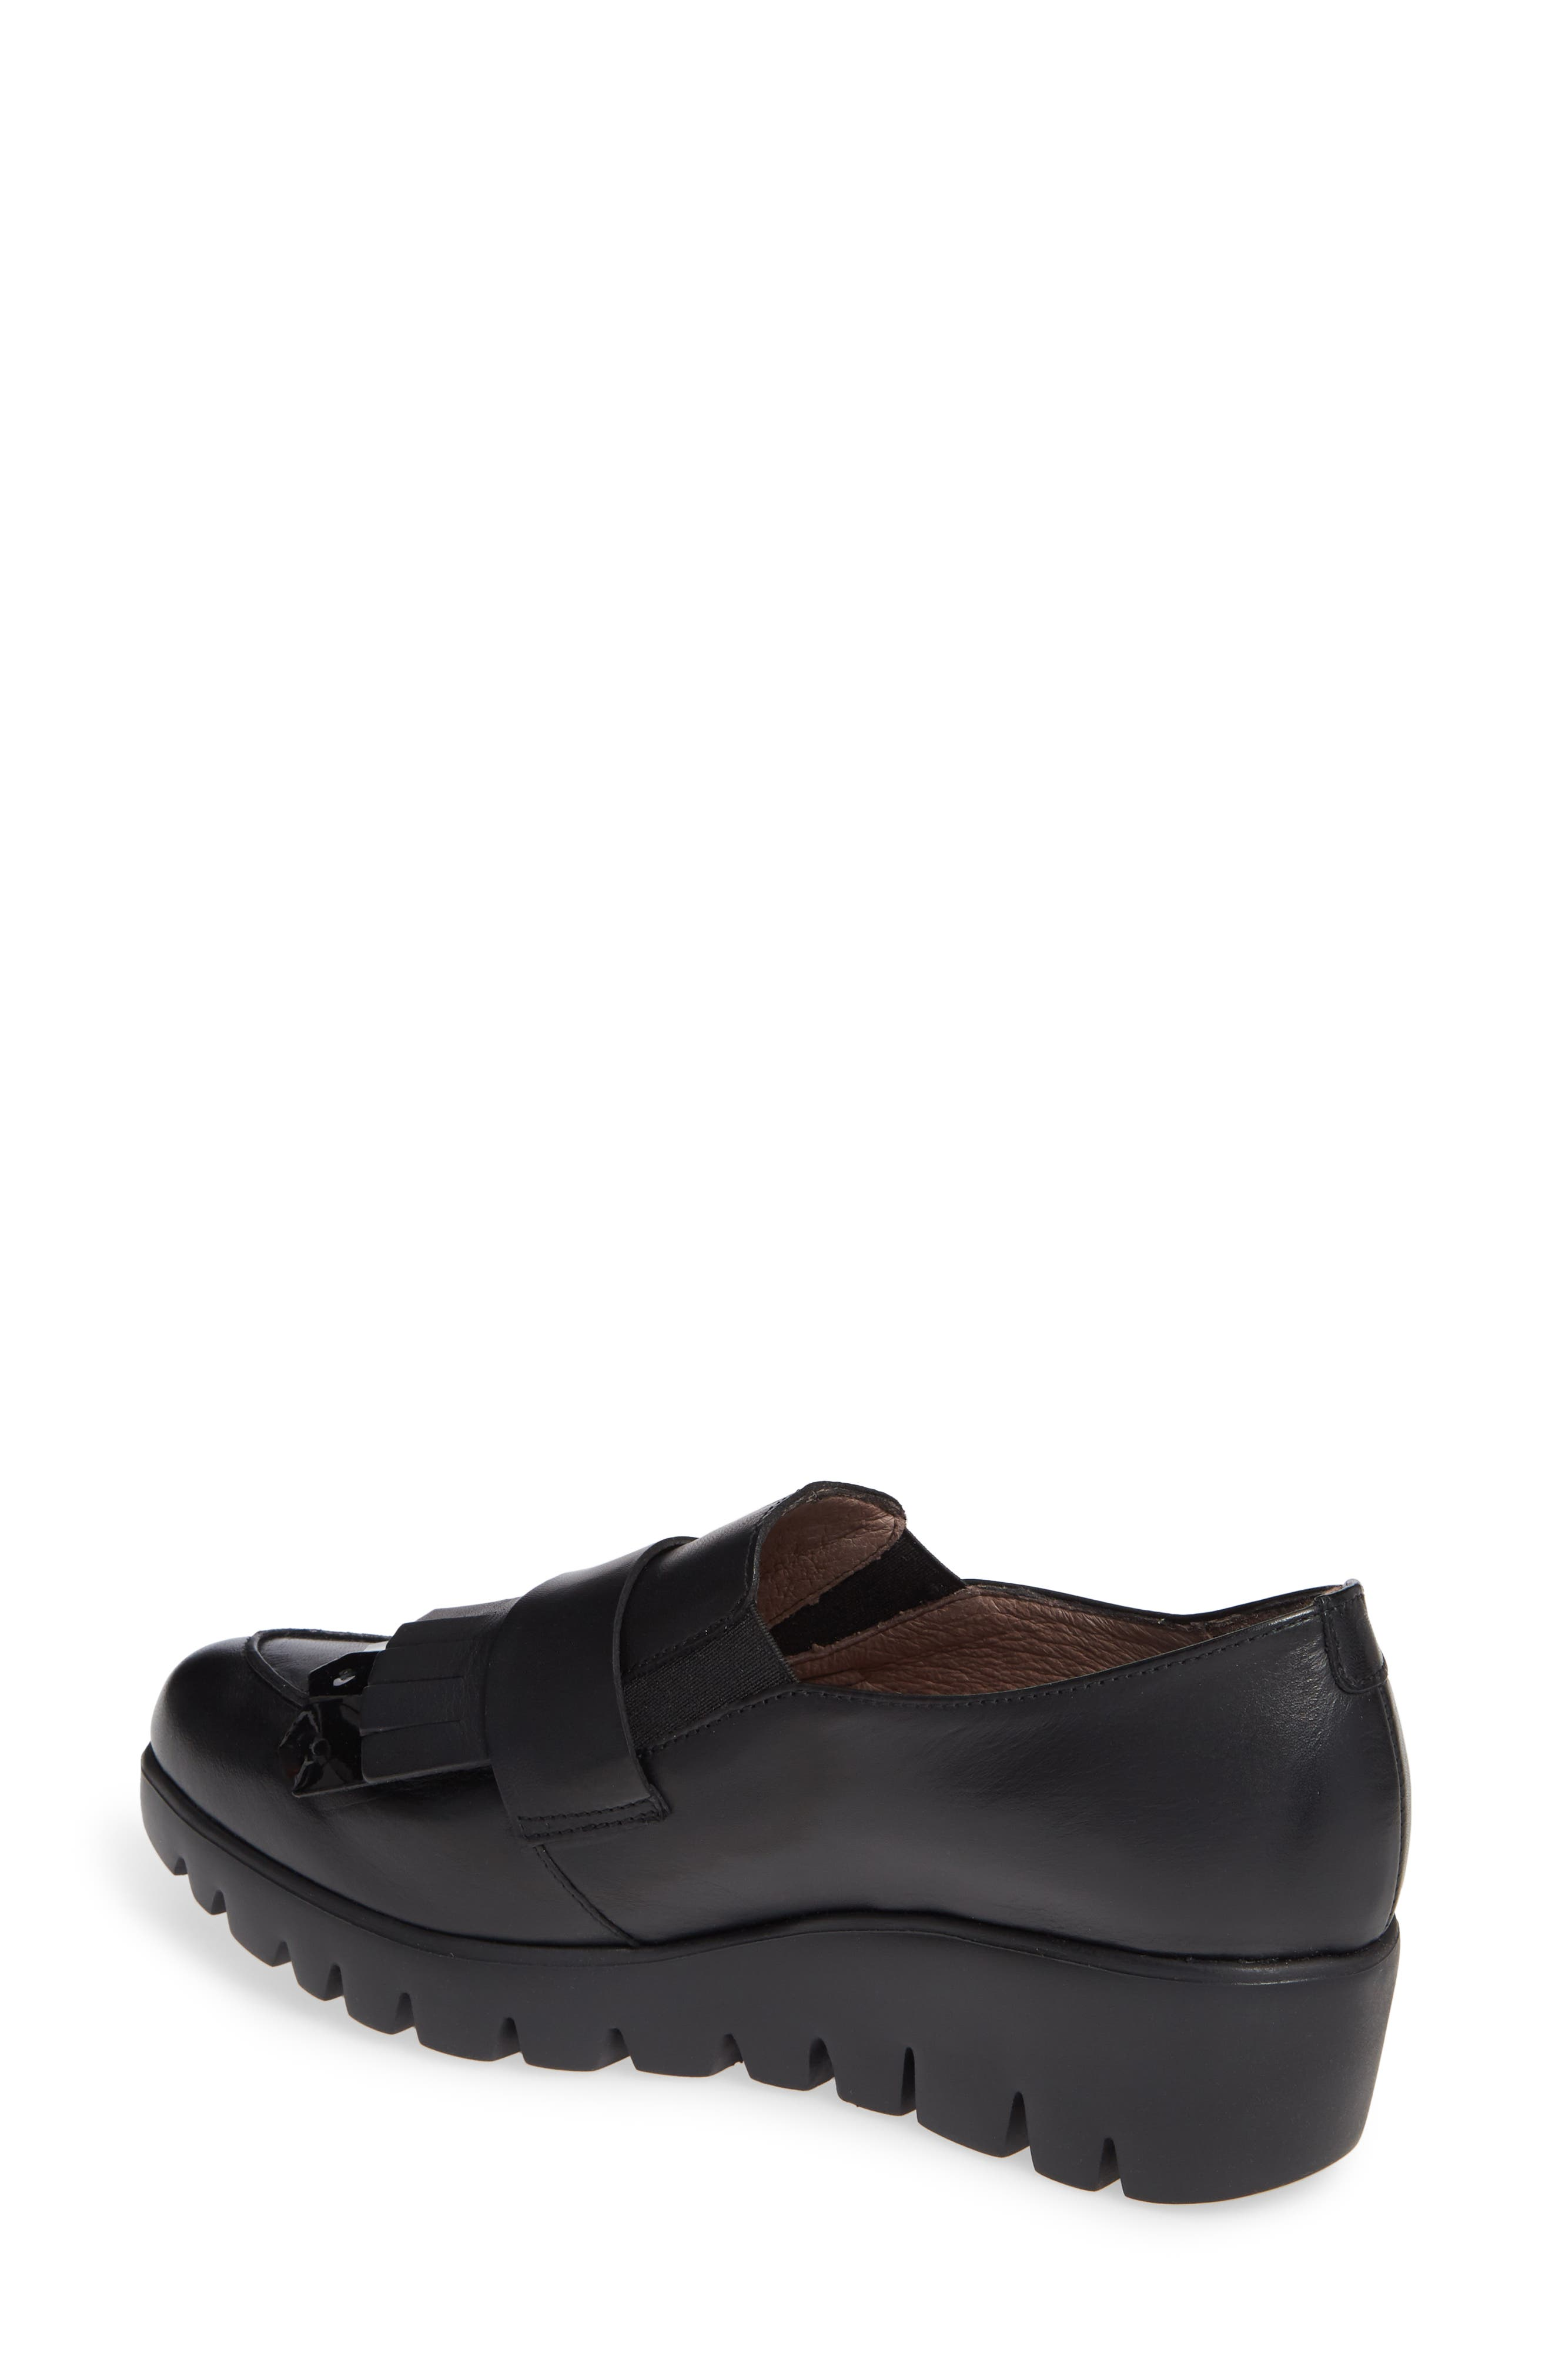 Kiltie Wedge Loafer,                             Alternate thumbnail 2, color,                             BLACK PATENT AND LEATHER